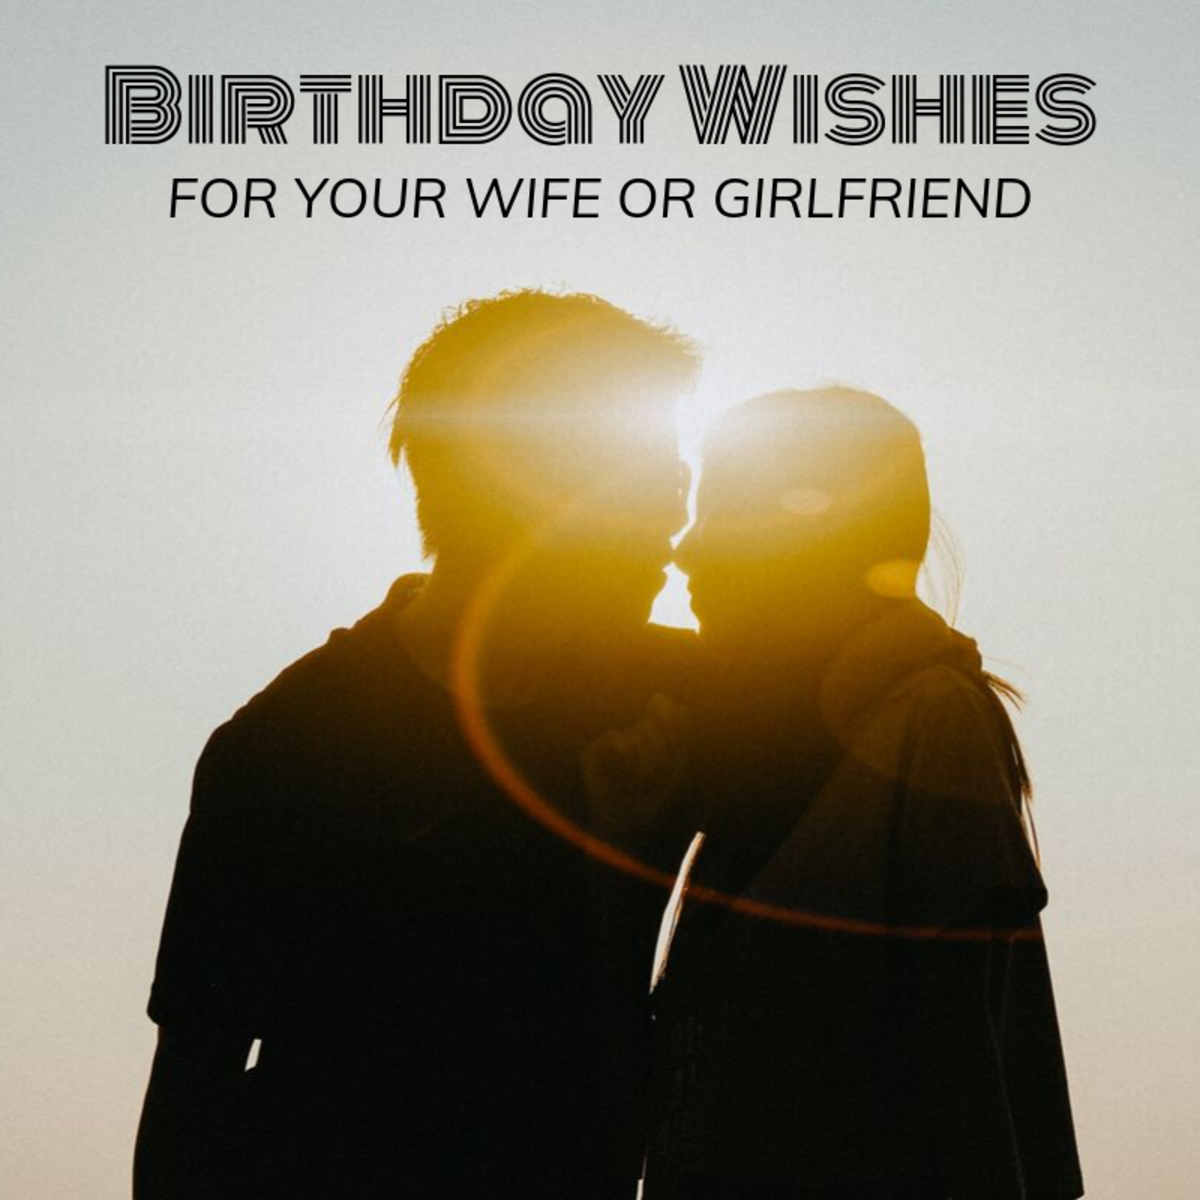 Example Birthday Wishes For A Wife Or Girlfriend Holidappy Celebrations